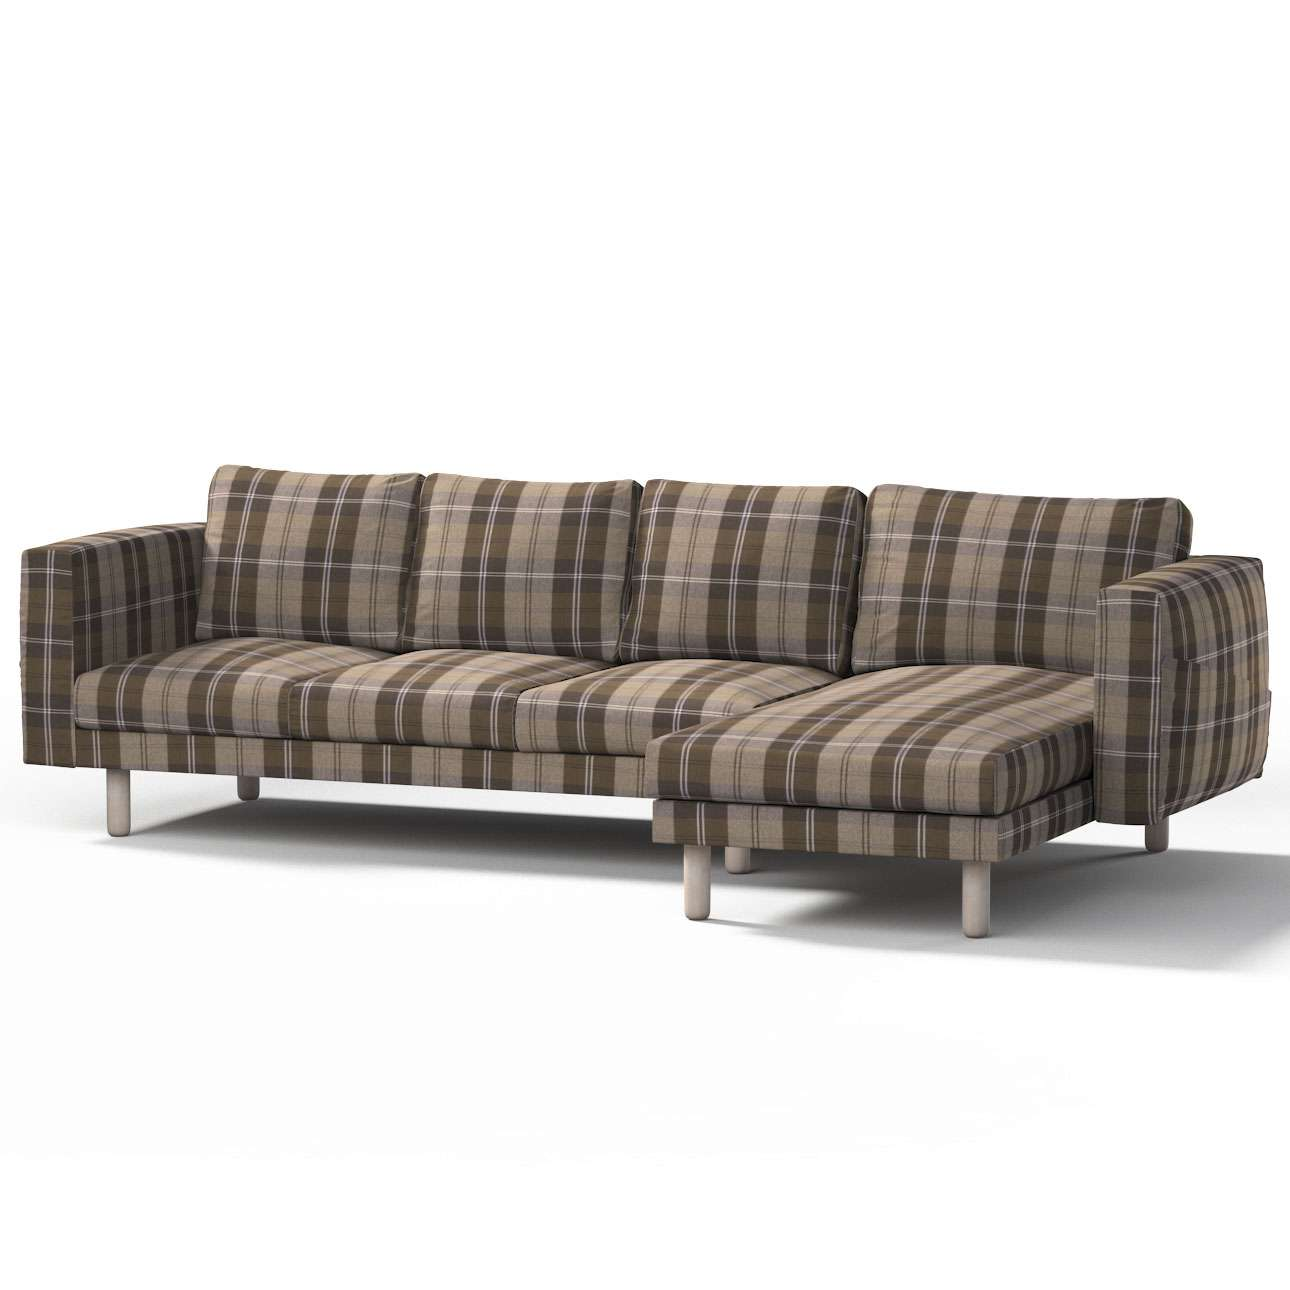 4 sitzer couch elegant sitzer sofas with 4 sitzer couch for Sofa 4 sitzer